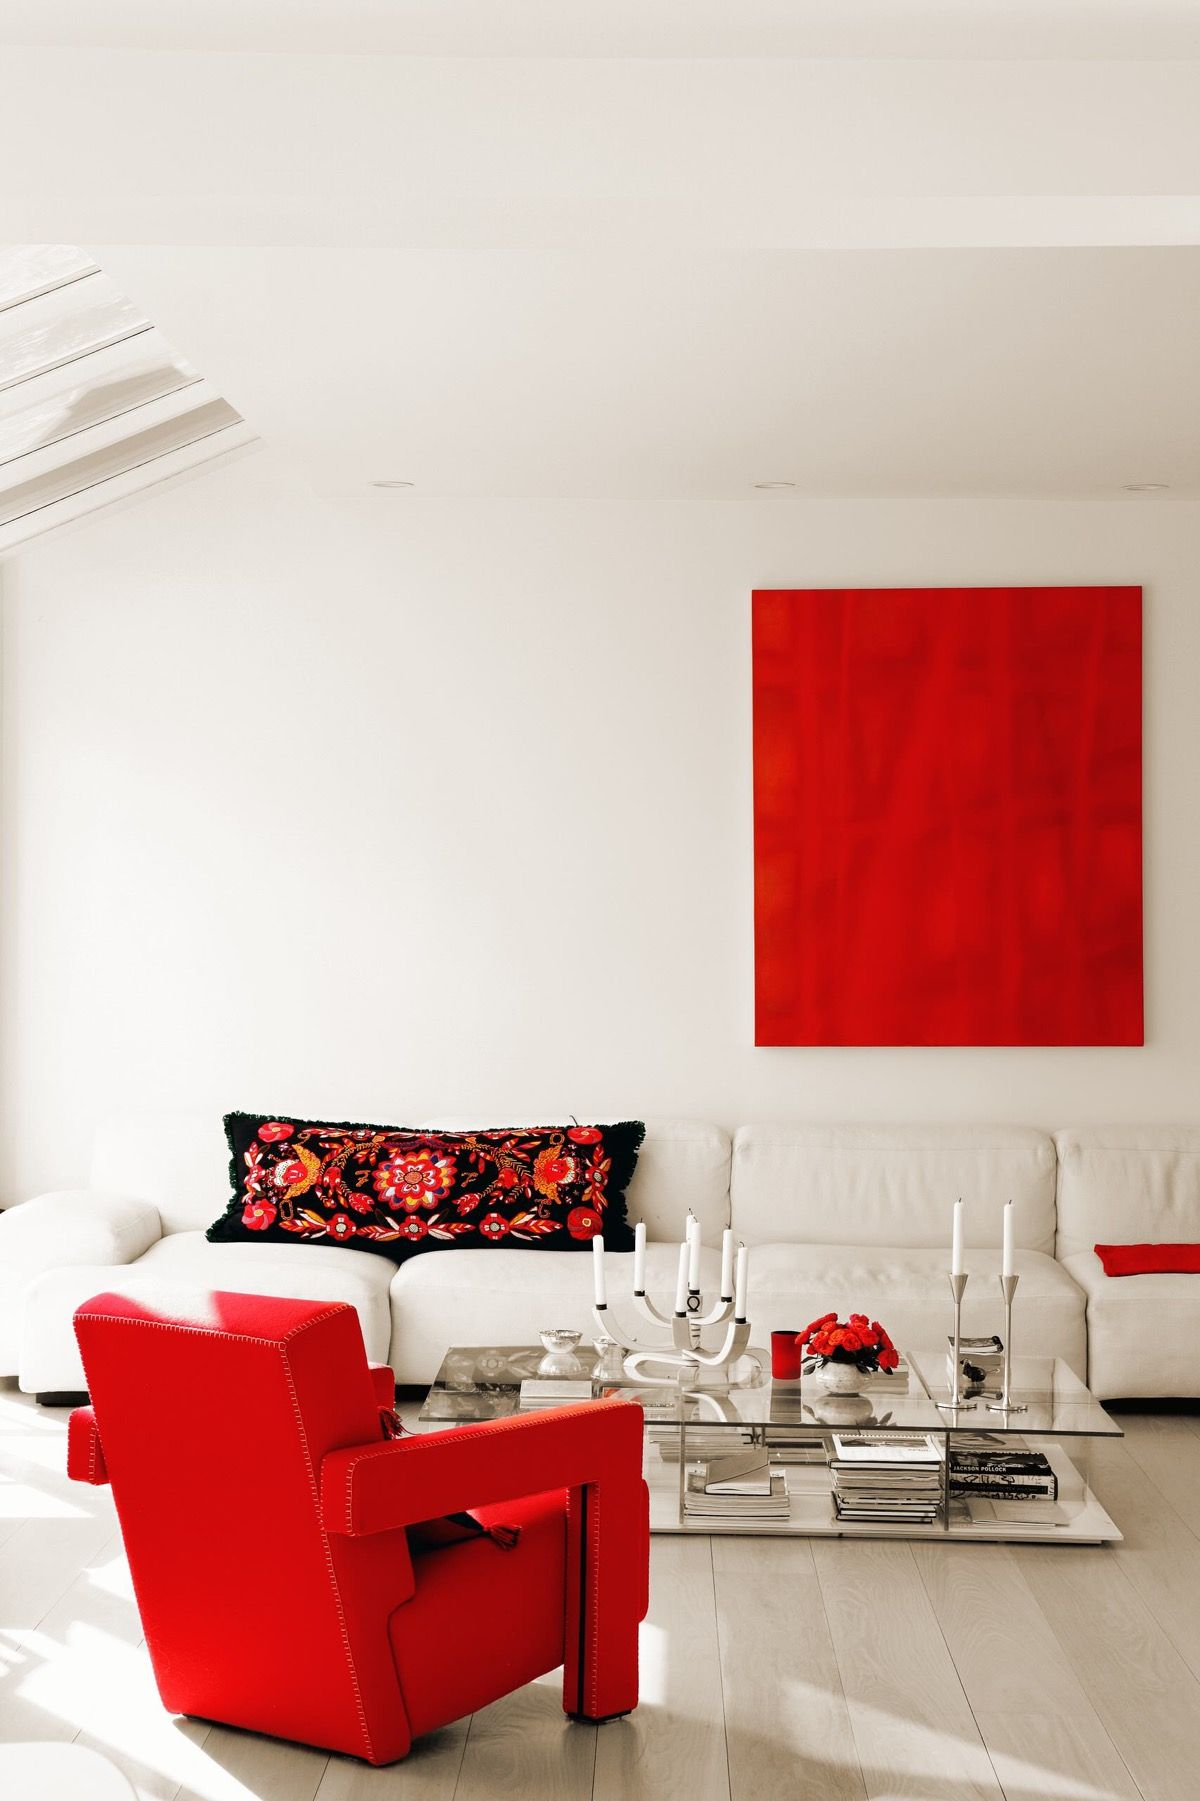 51 Red Living Rooms With Tips And Accessories To Help You Decorate Yours In 2020 Red Furniture Living Room Living Room Scandinavian Living Room Red #red #living #room #accessories